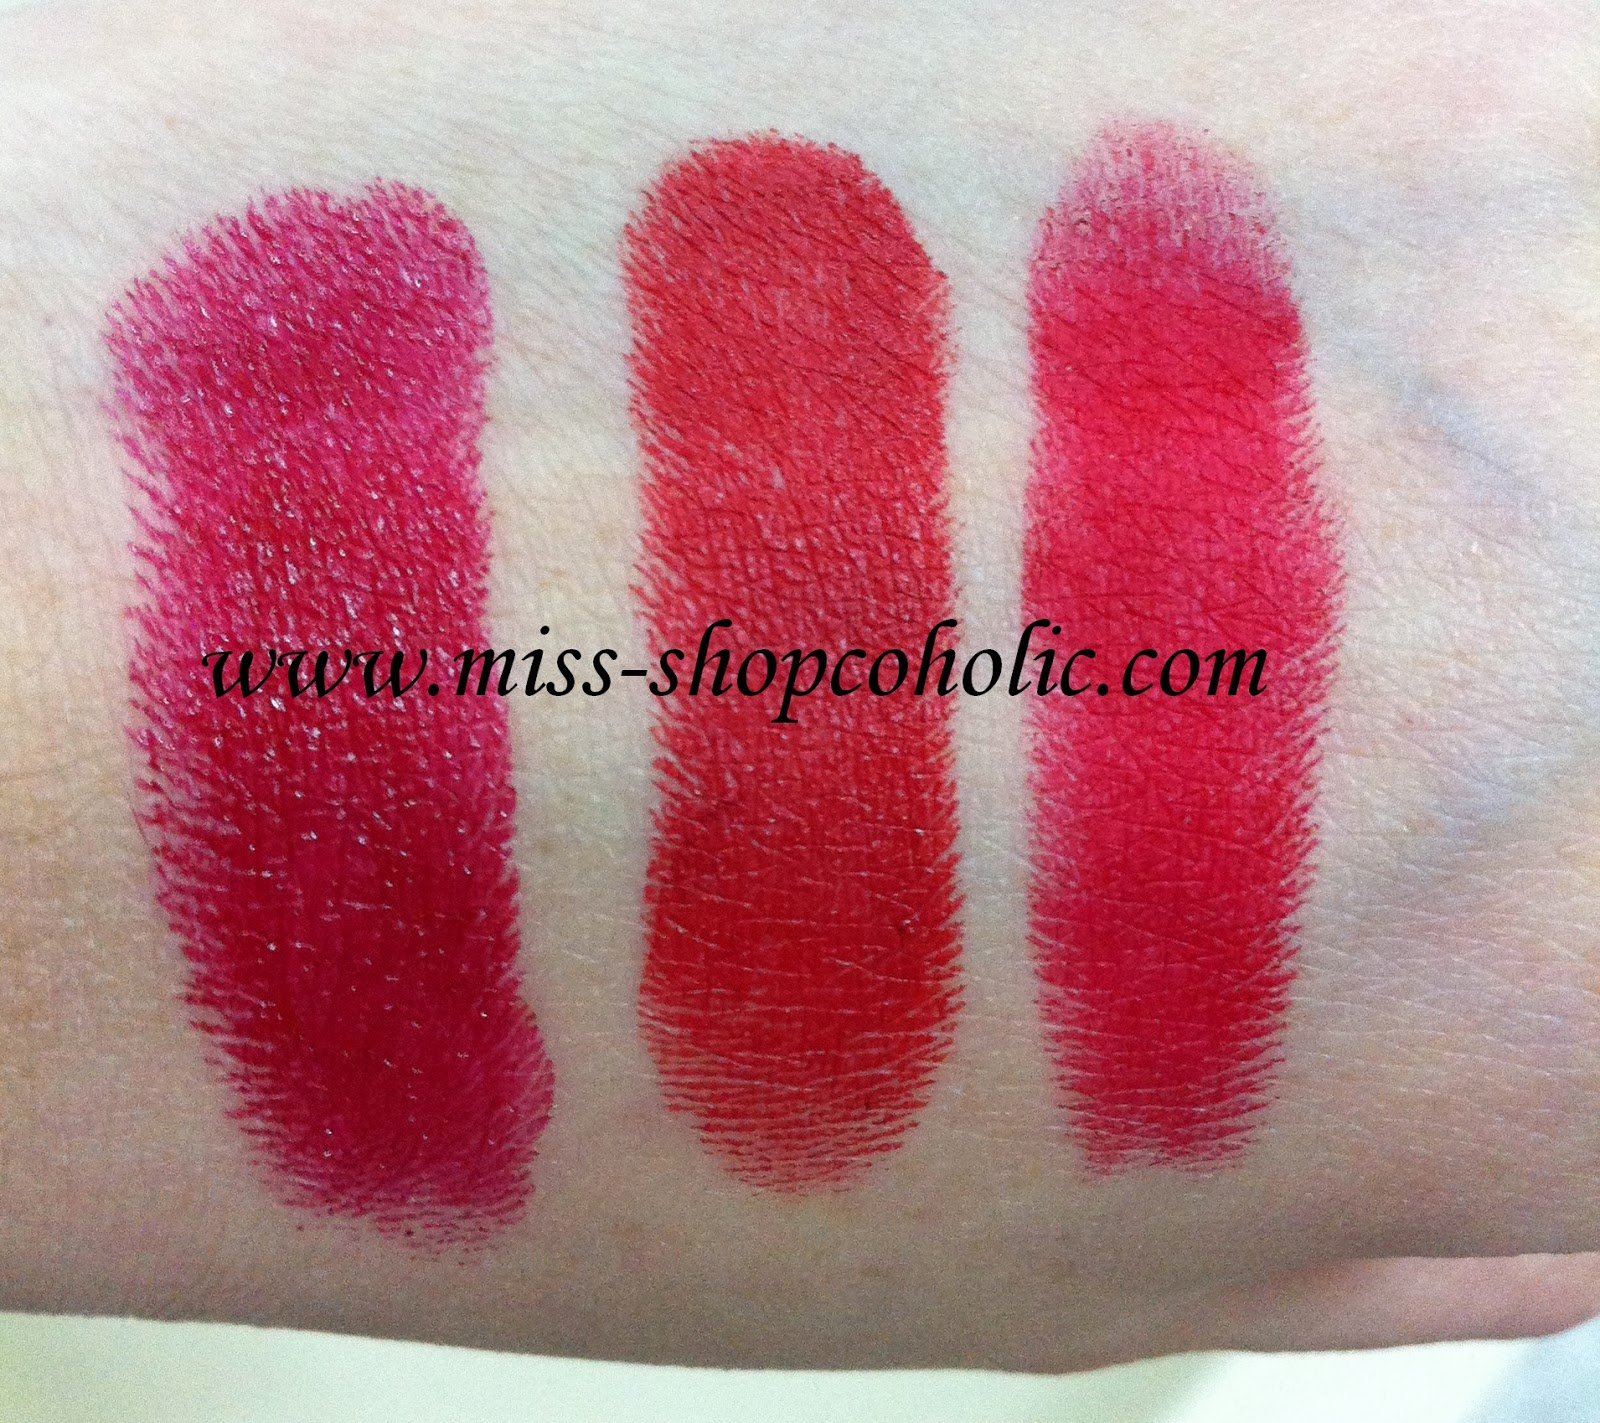 Bobbi Brown Red Carpet Lipstick Swatch